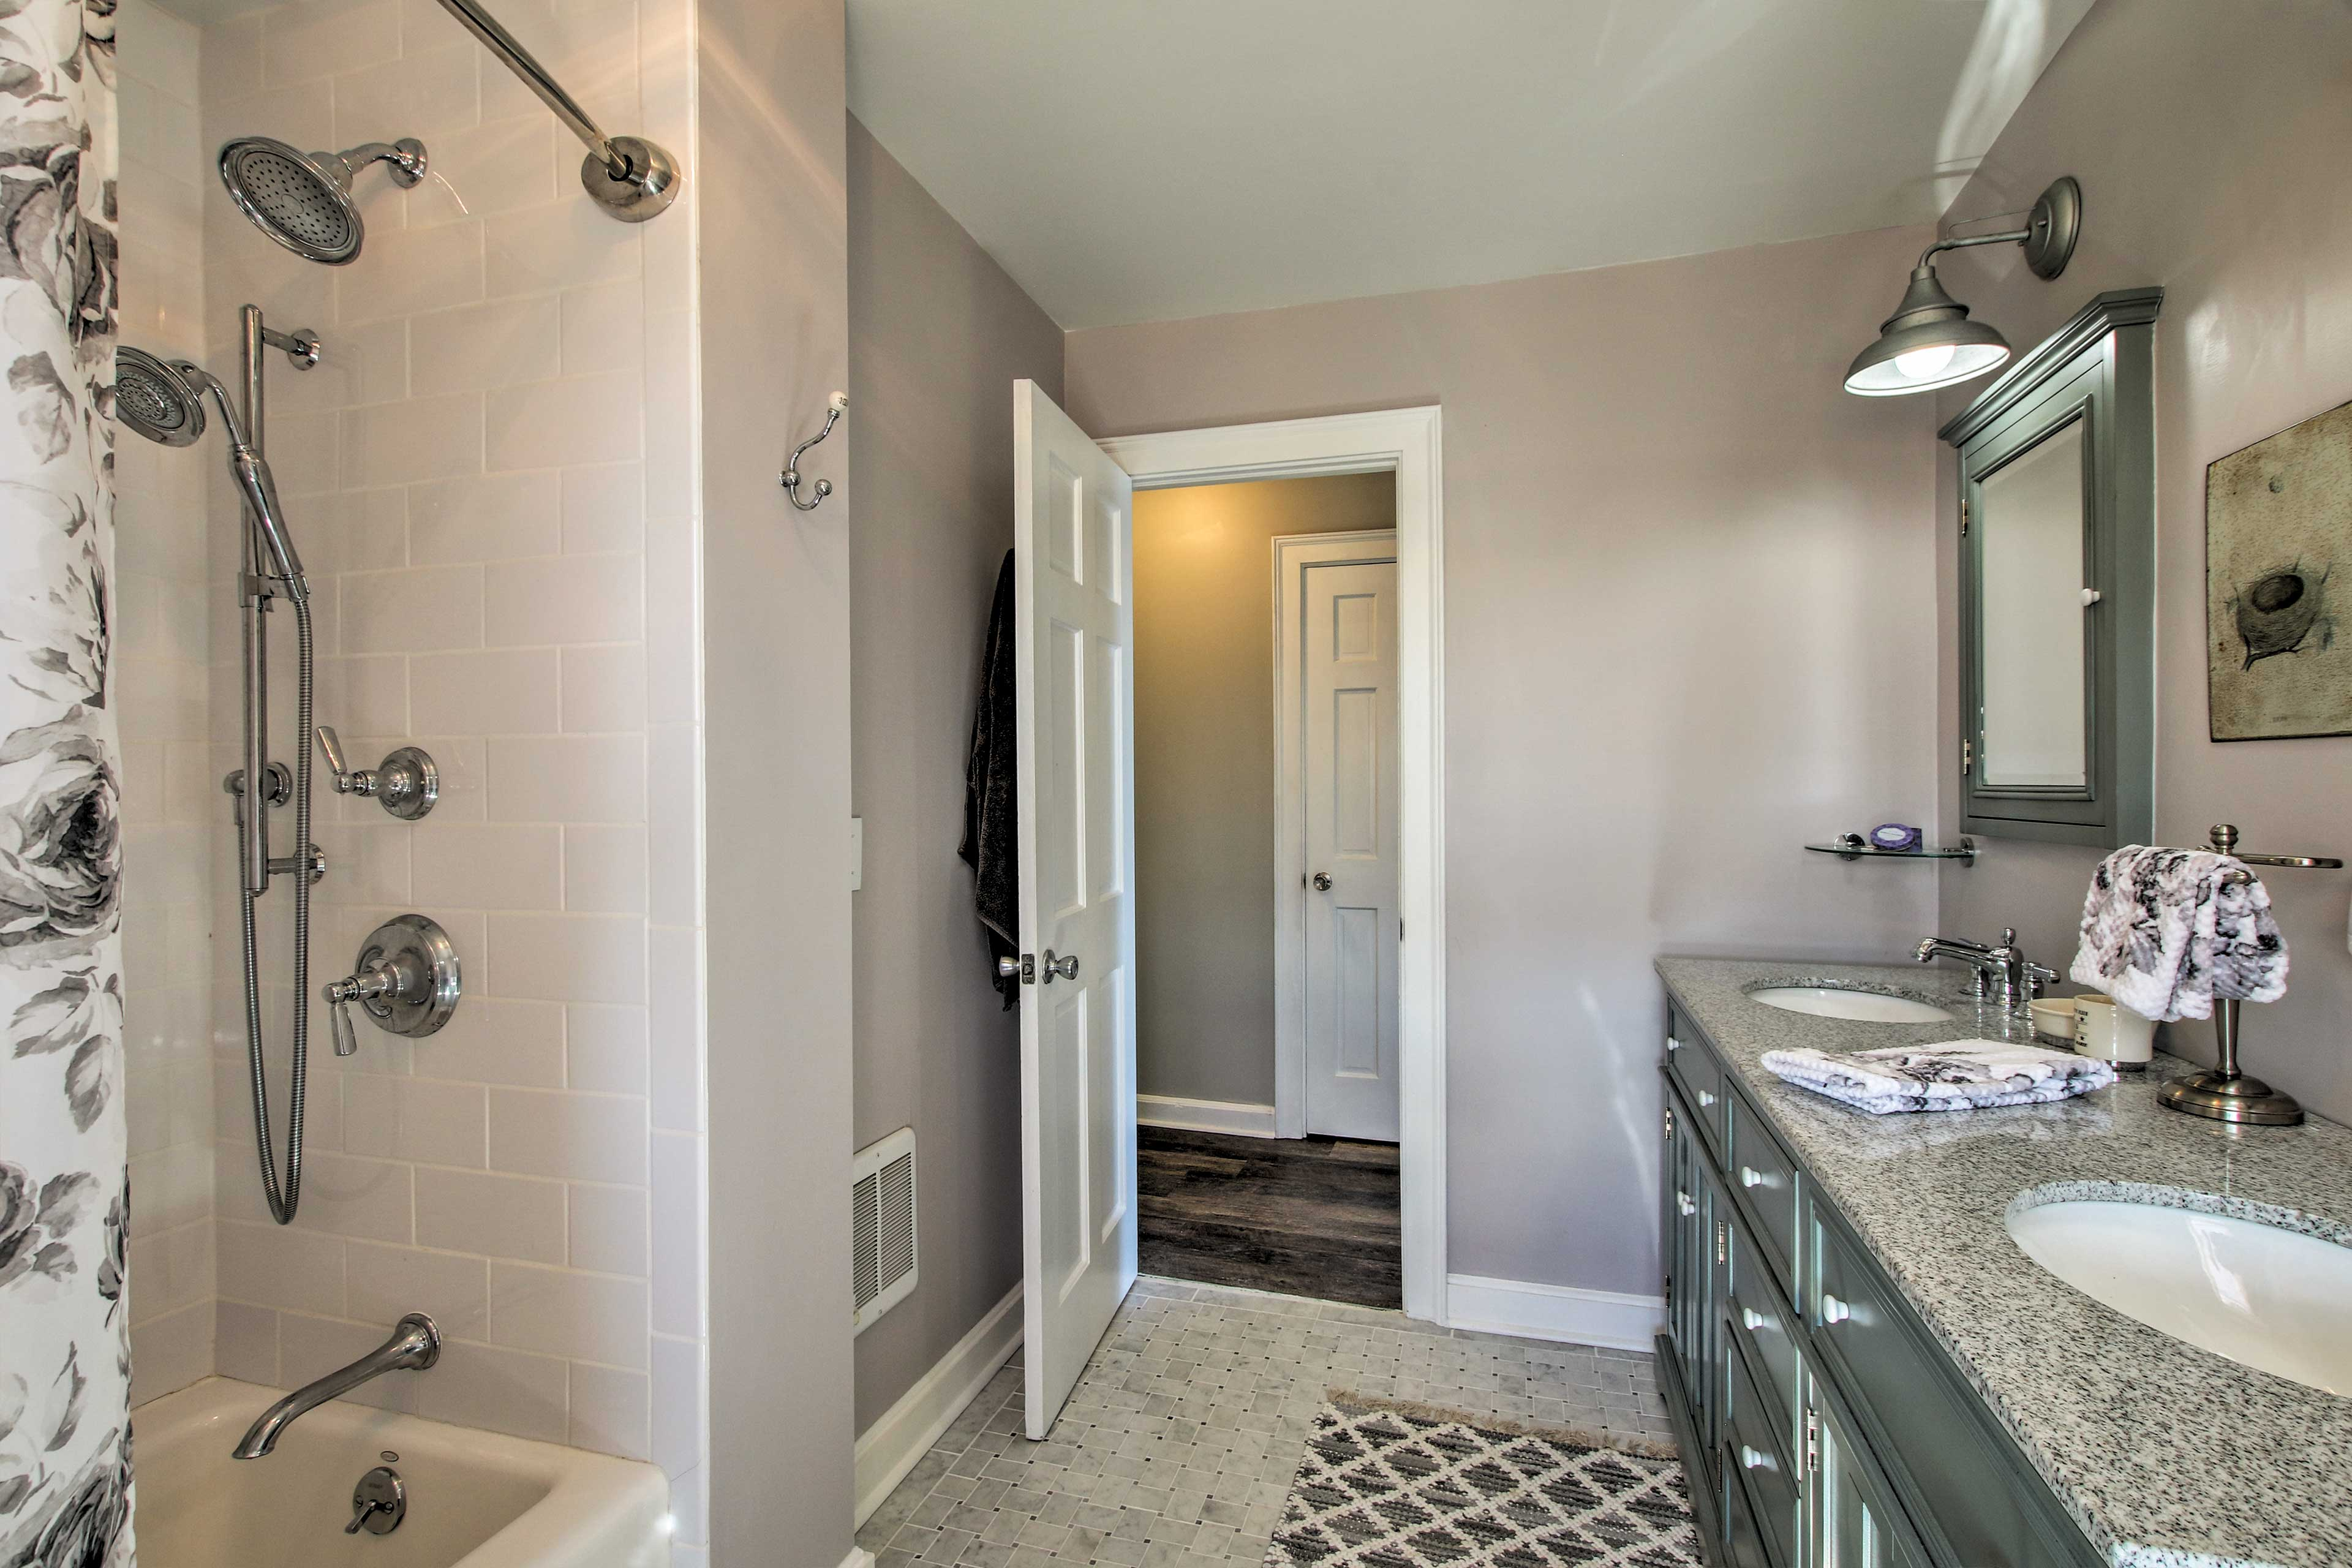 Guests can easily get ready using the second bathroom's shower/tub combo.